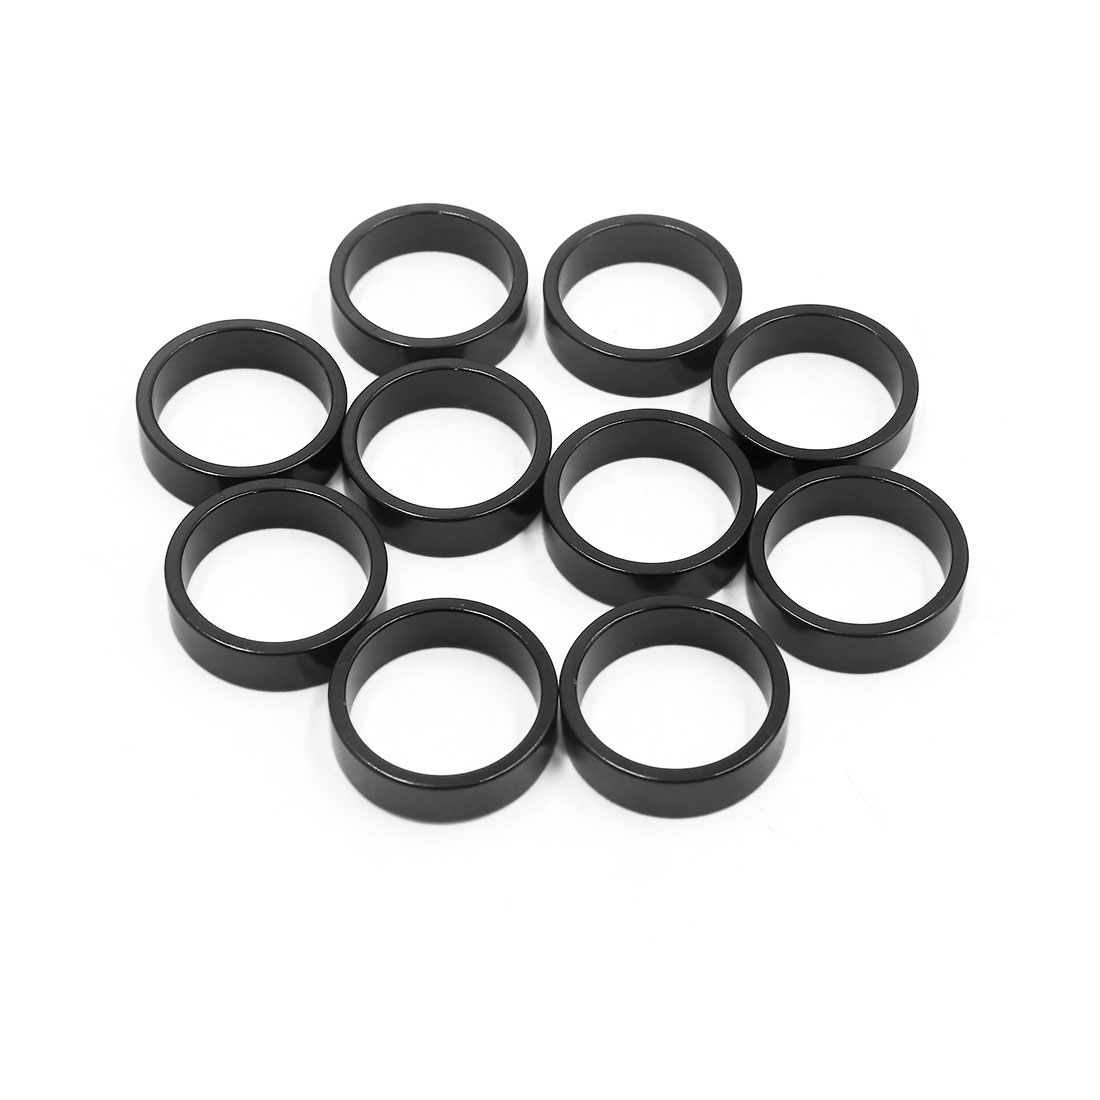 10Pcs Black Aluminum Alloy MTB Bike Bicycle Spacer Fork Stem Washer 28.6 x 10mm